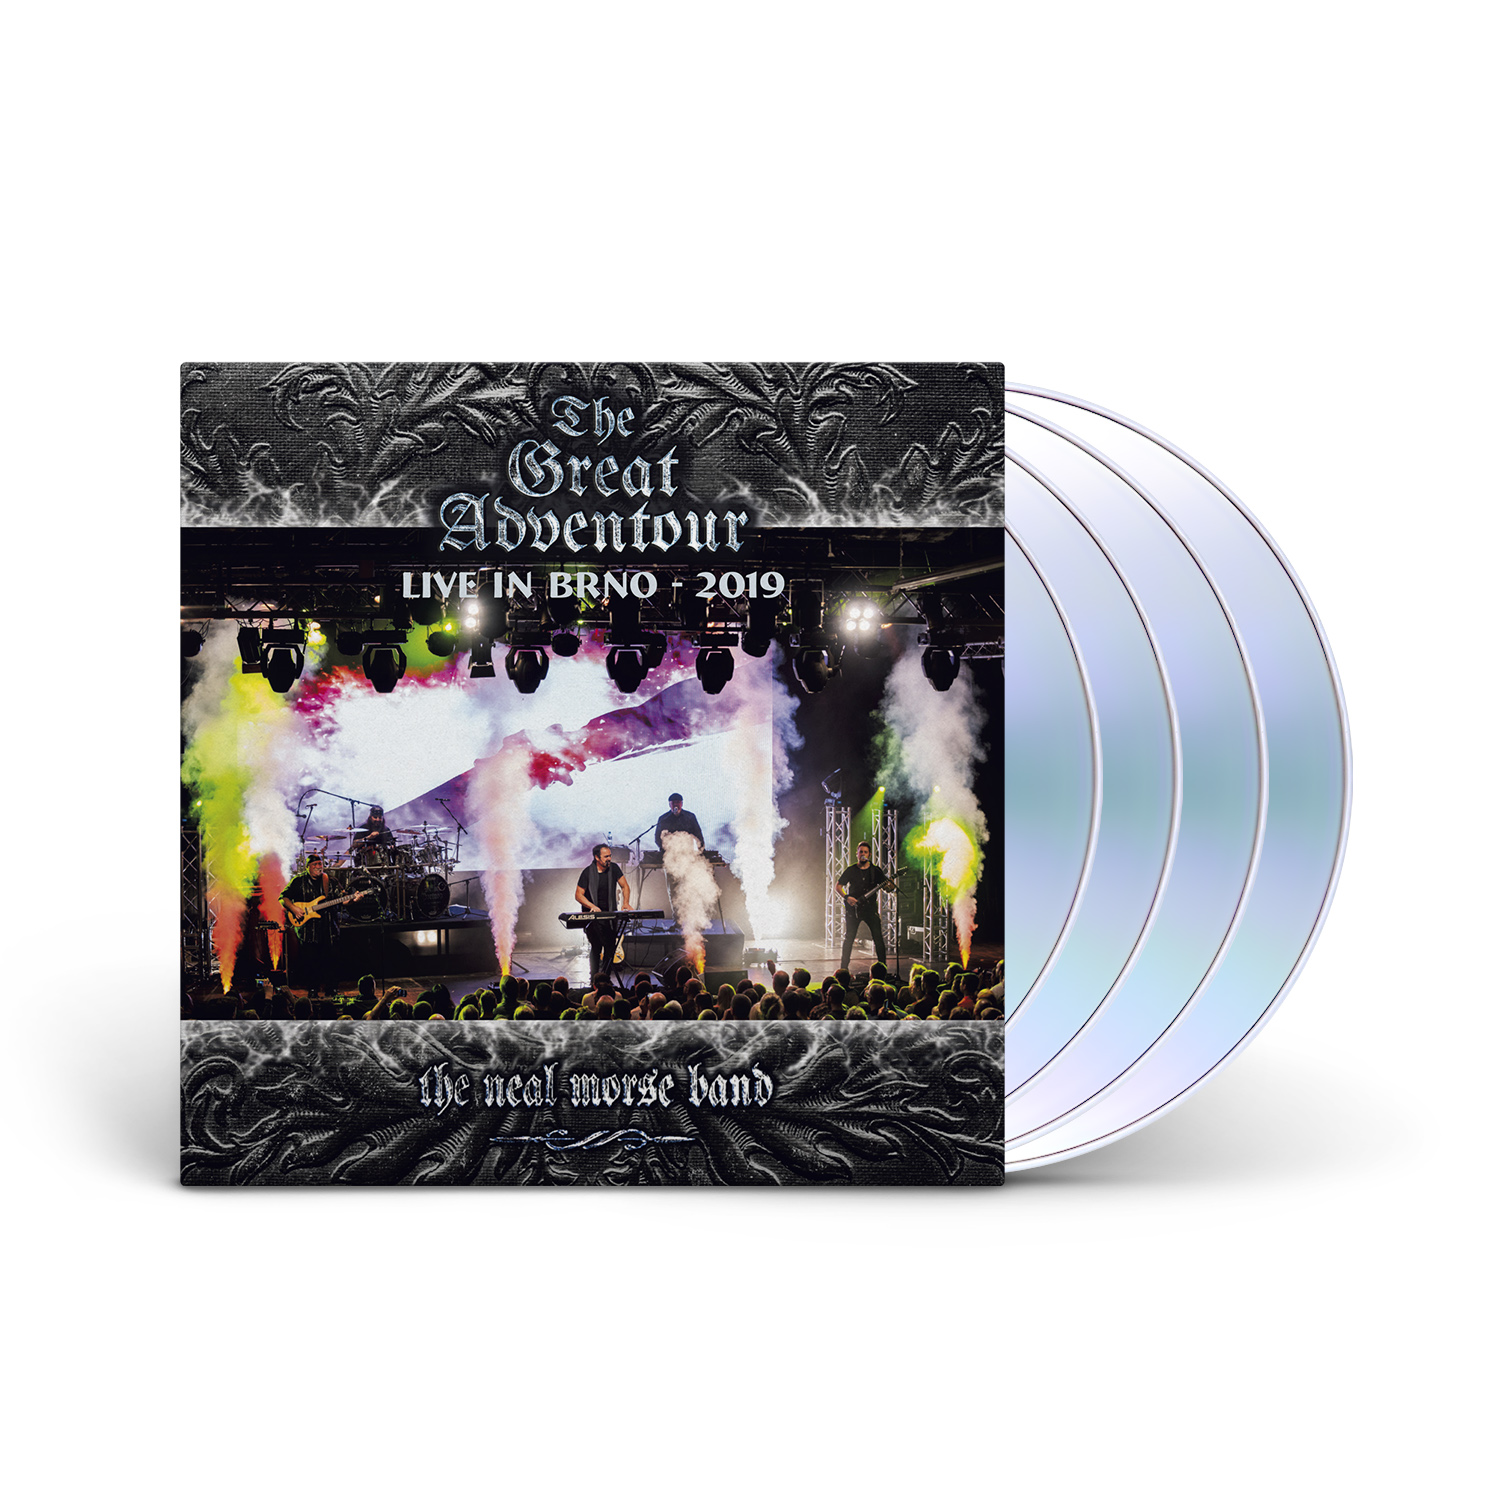 The Neal Morse Band - The Great Adventour Live in BRNO 2CD + BLU-RAY